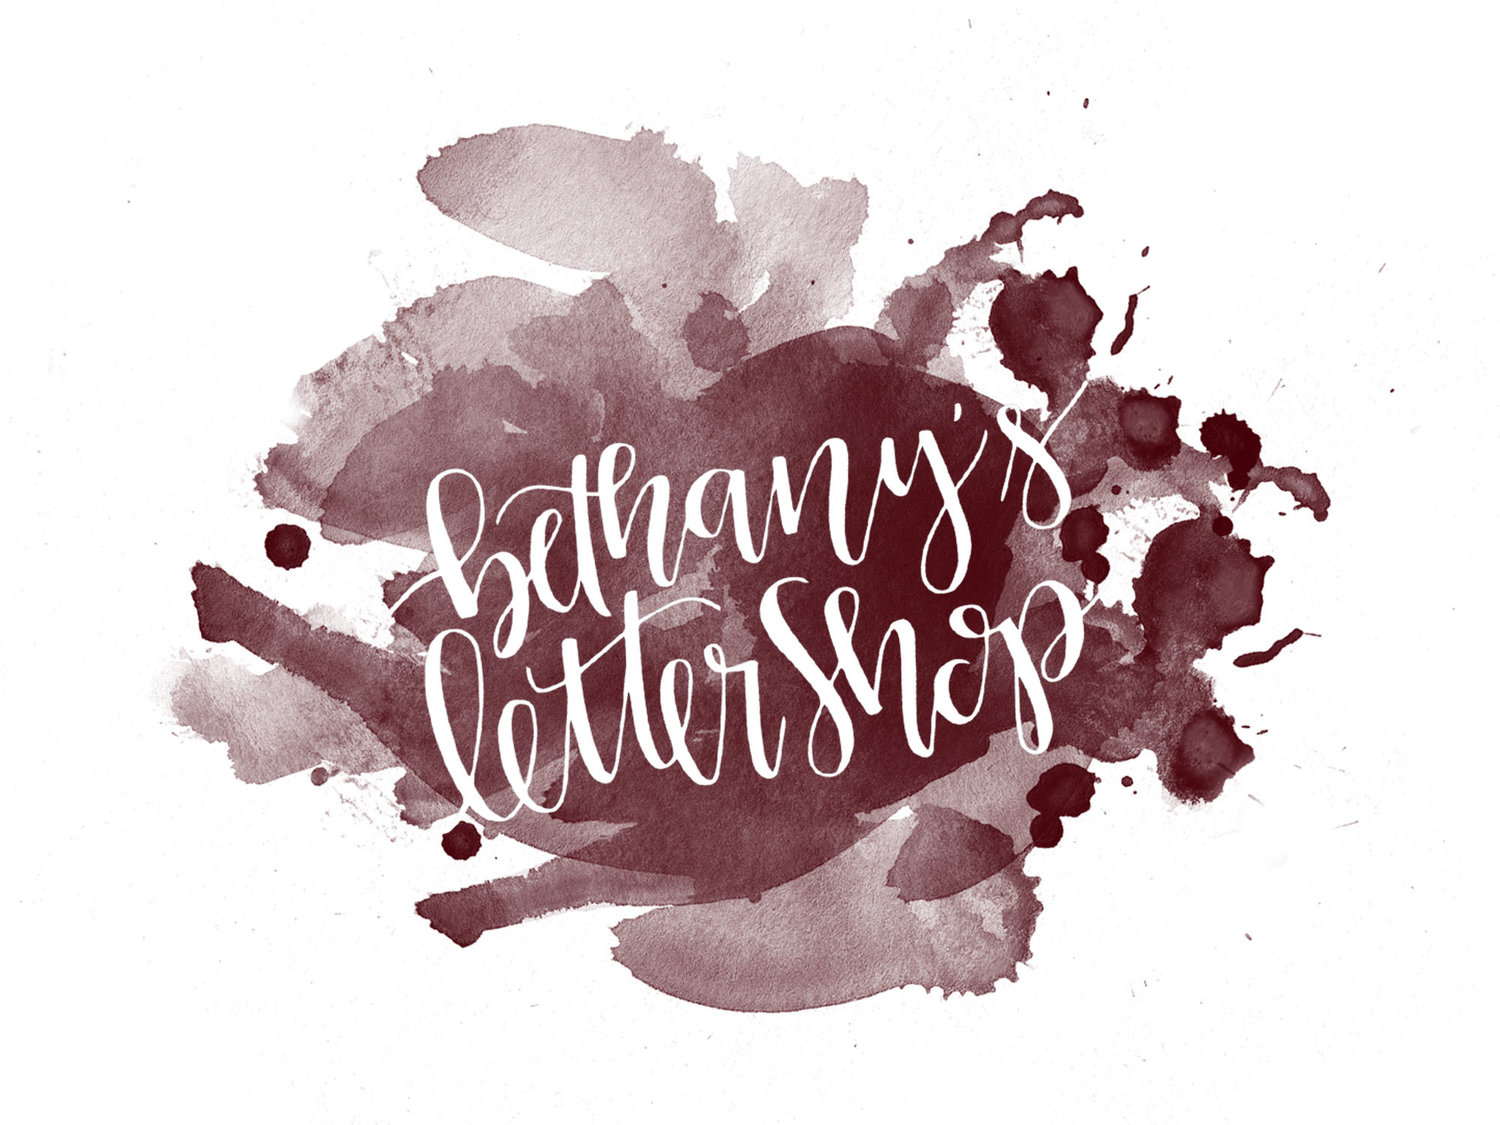 Bethany's Letter Shop Calligraphy, Invitations